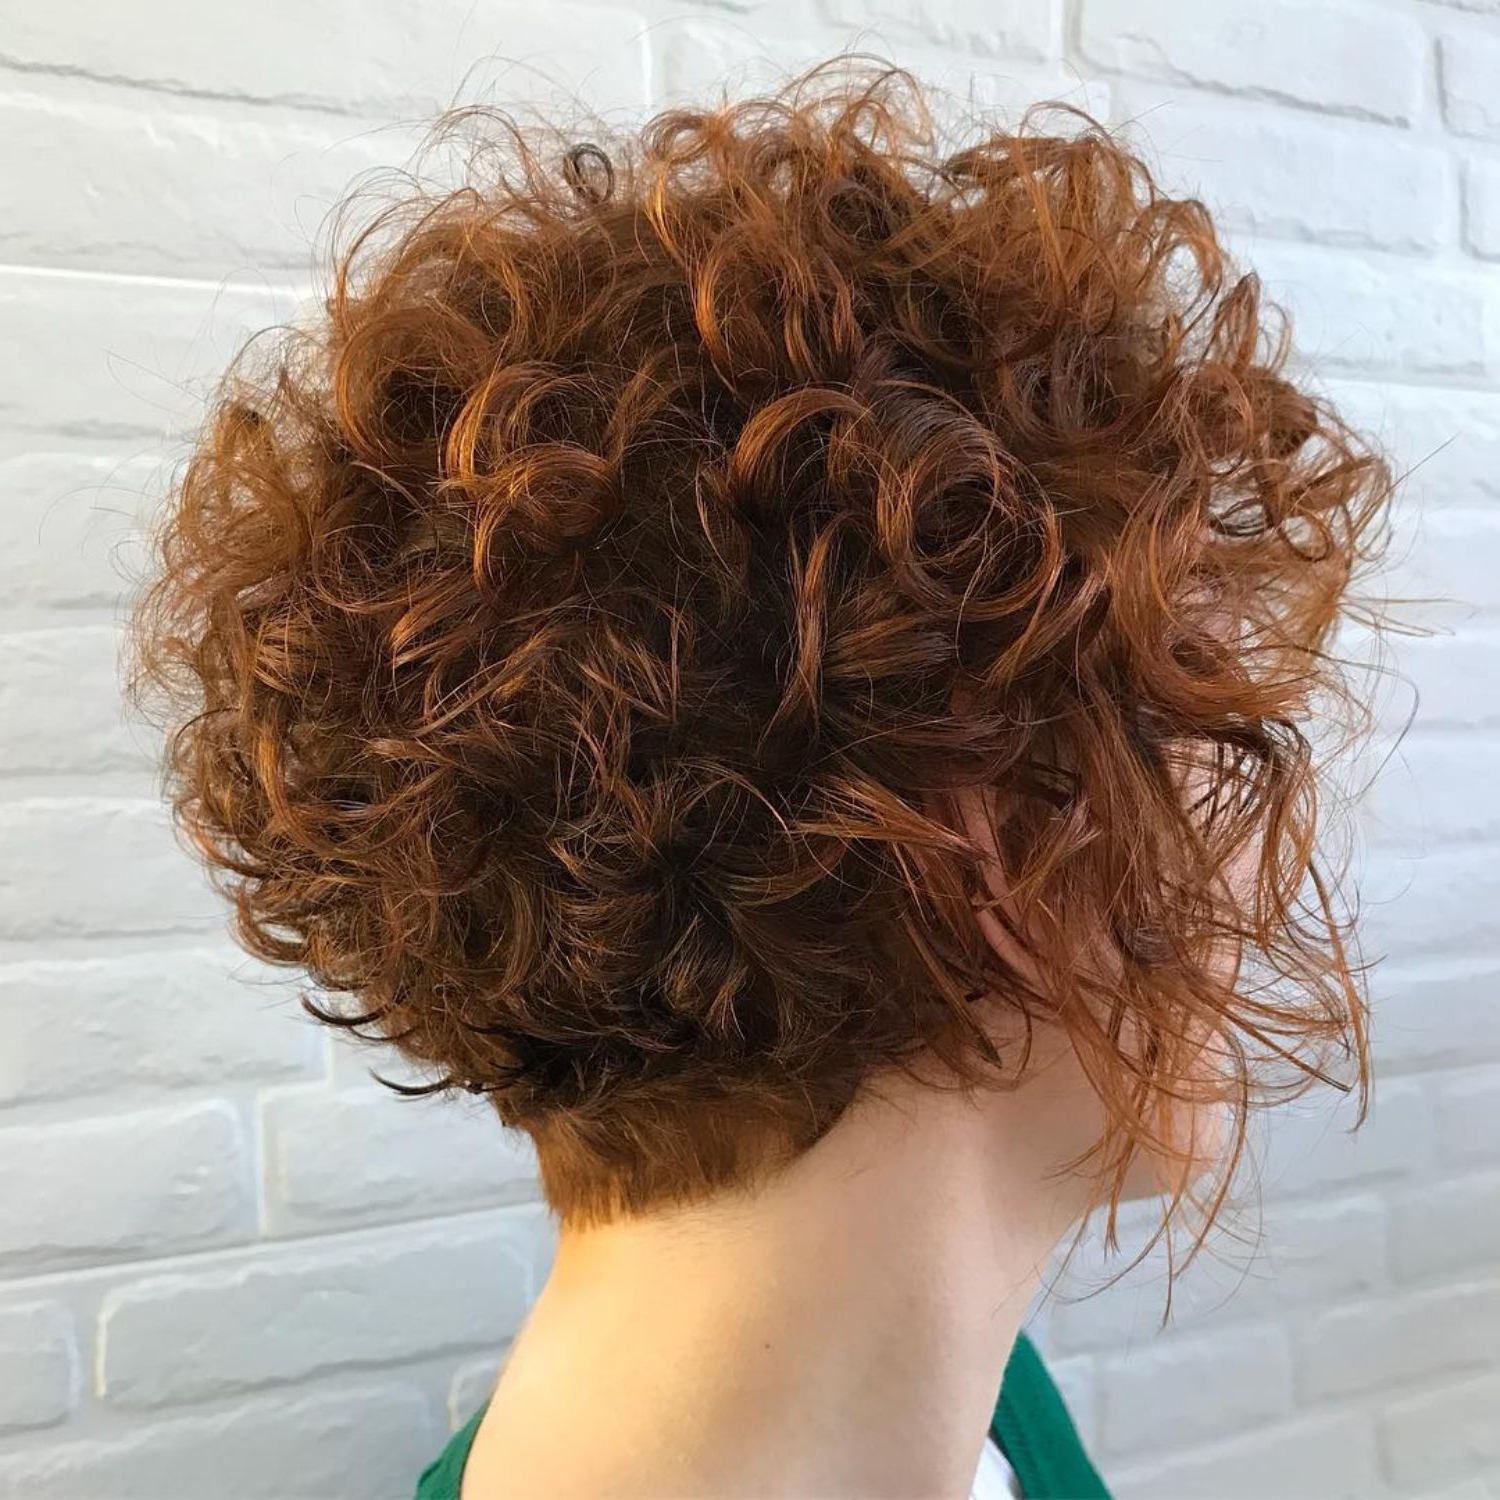 60 Most Delightful Short Wavy Hairstyles In 2018 | Hair Ideas With Tapered Brown Pixie Hairstyles With Ginger Curls (View 8 of 20)